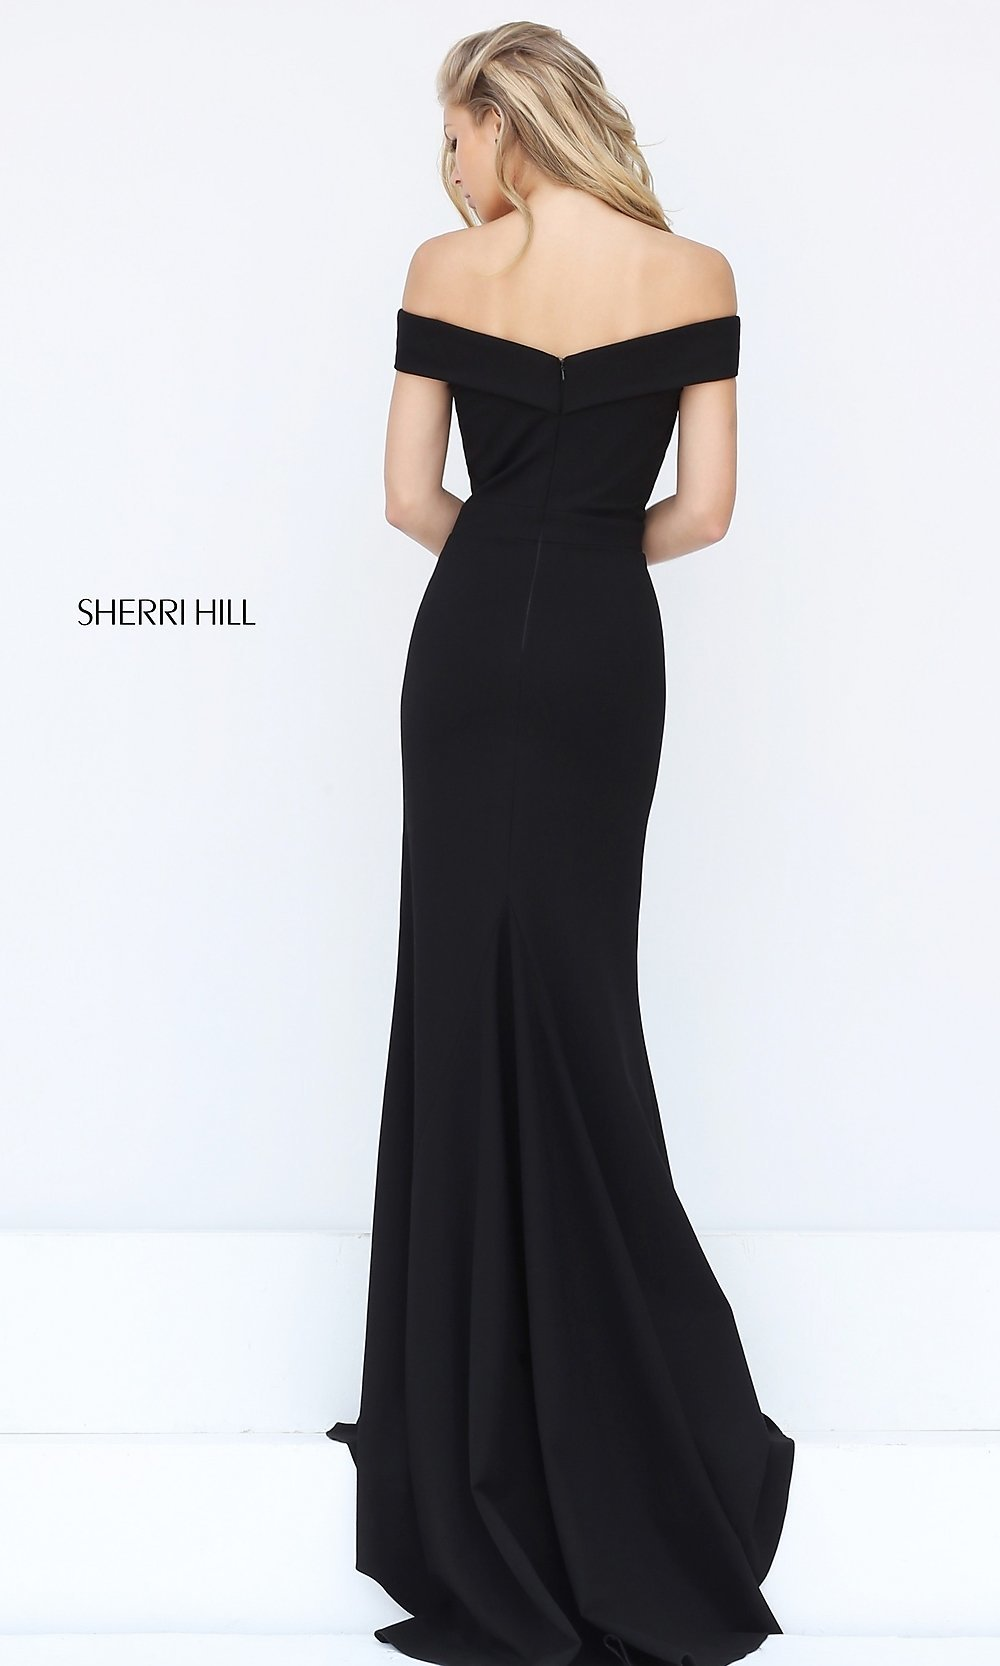 Sherri hill black dress 29578